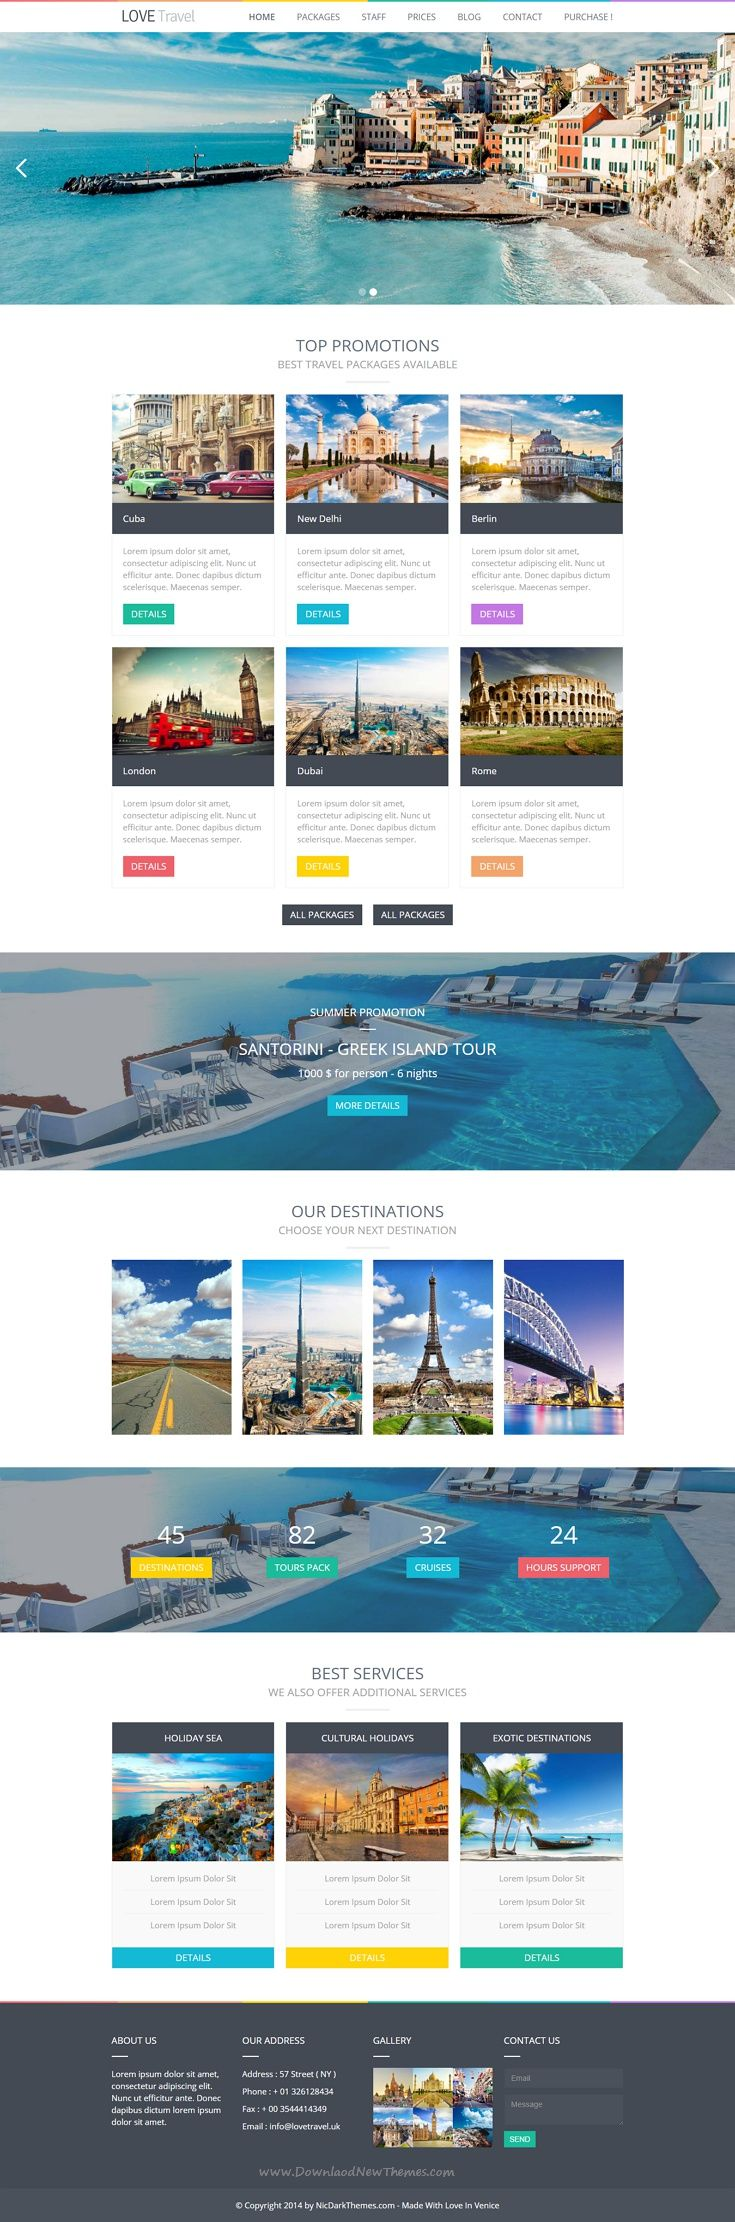 Love Travel premium #webflow theme for travel agencies #website. With this travel theme you can create unlimited pages in a very simple way and you can create #travel packages and offers for any destination.